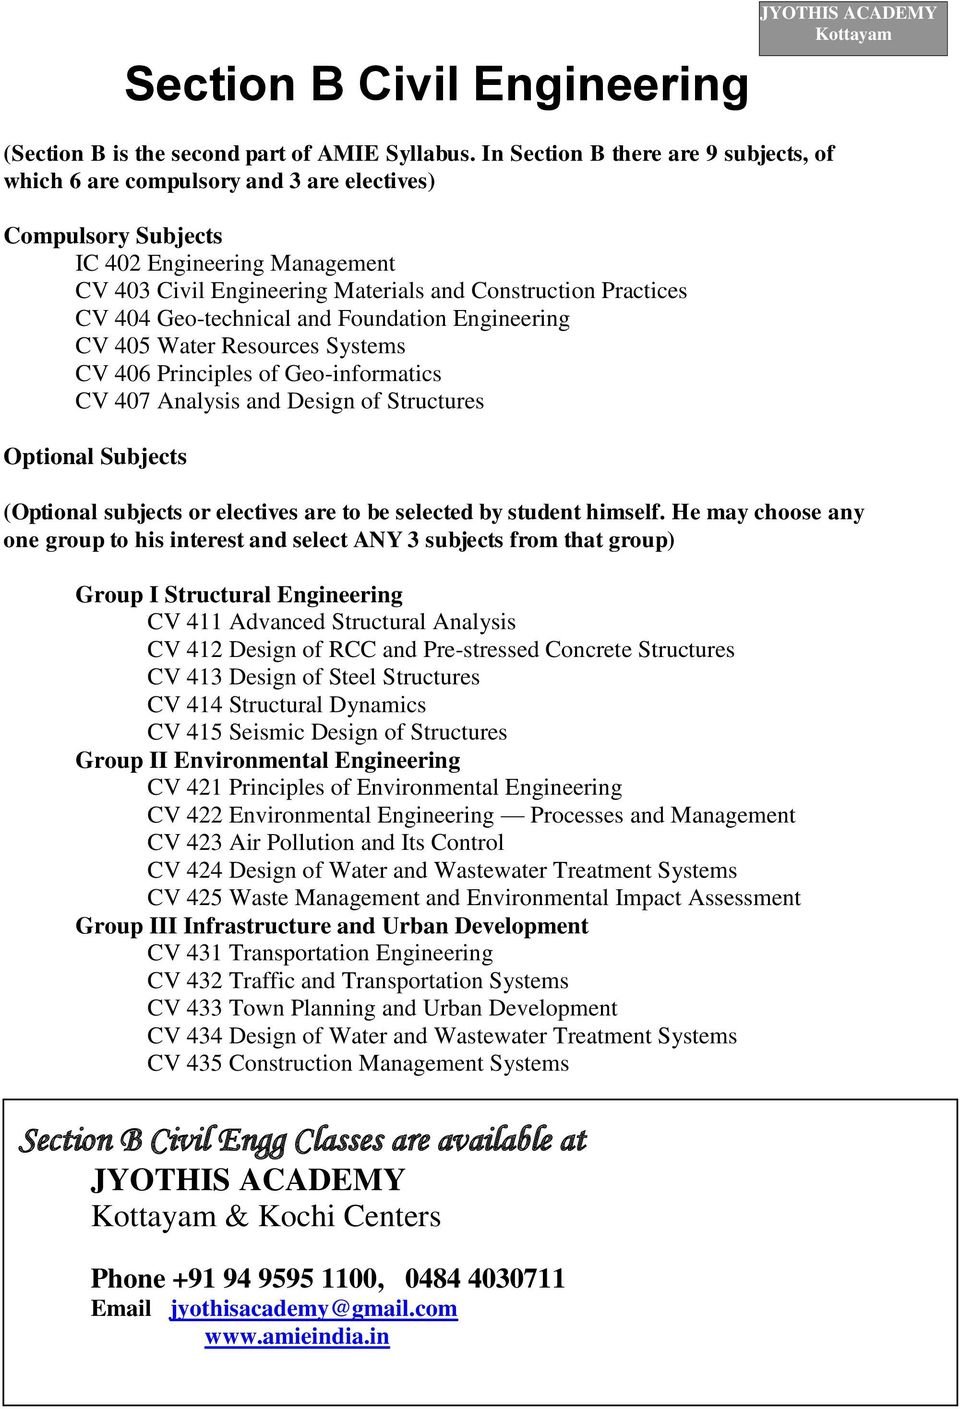 Systems Engineering b com it subjects